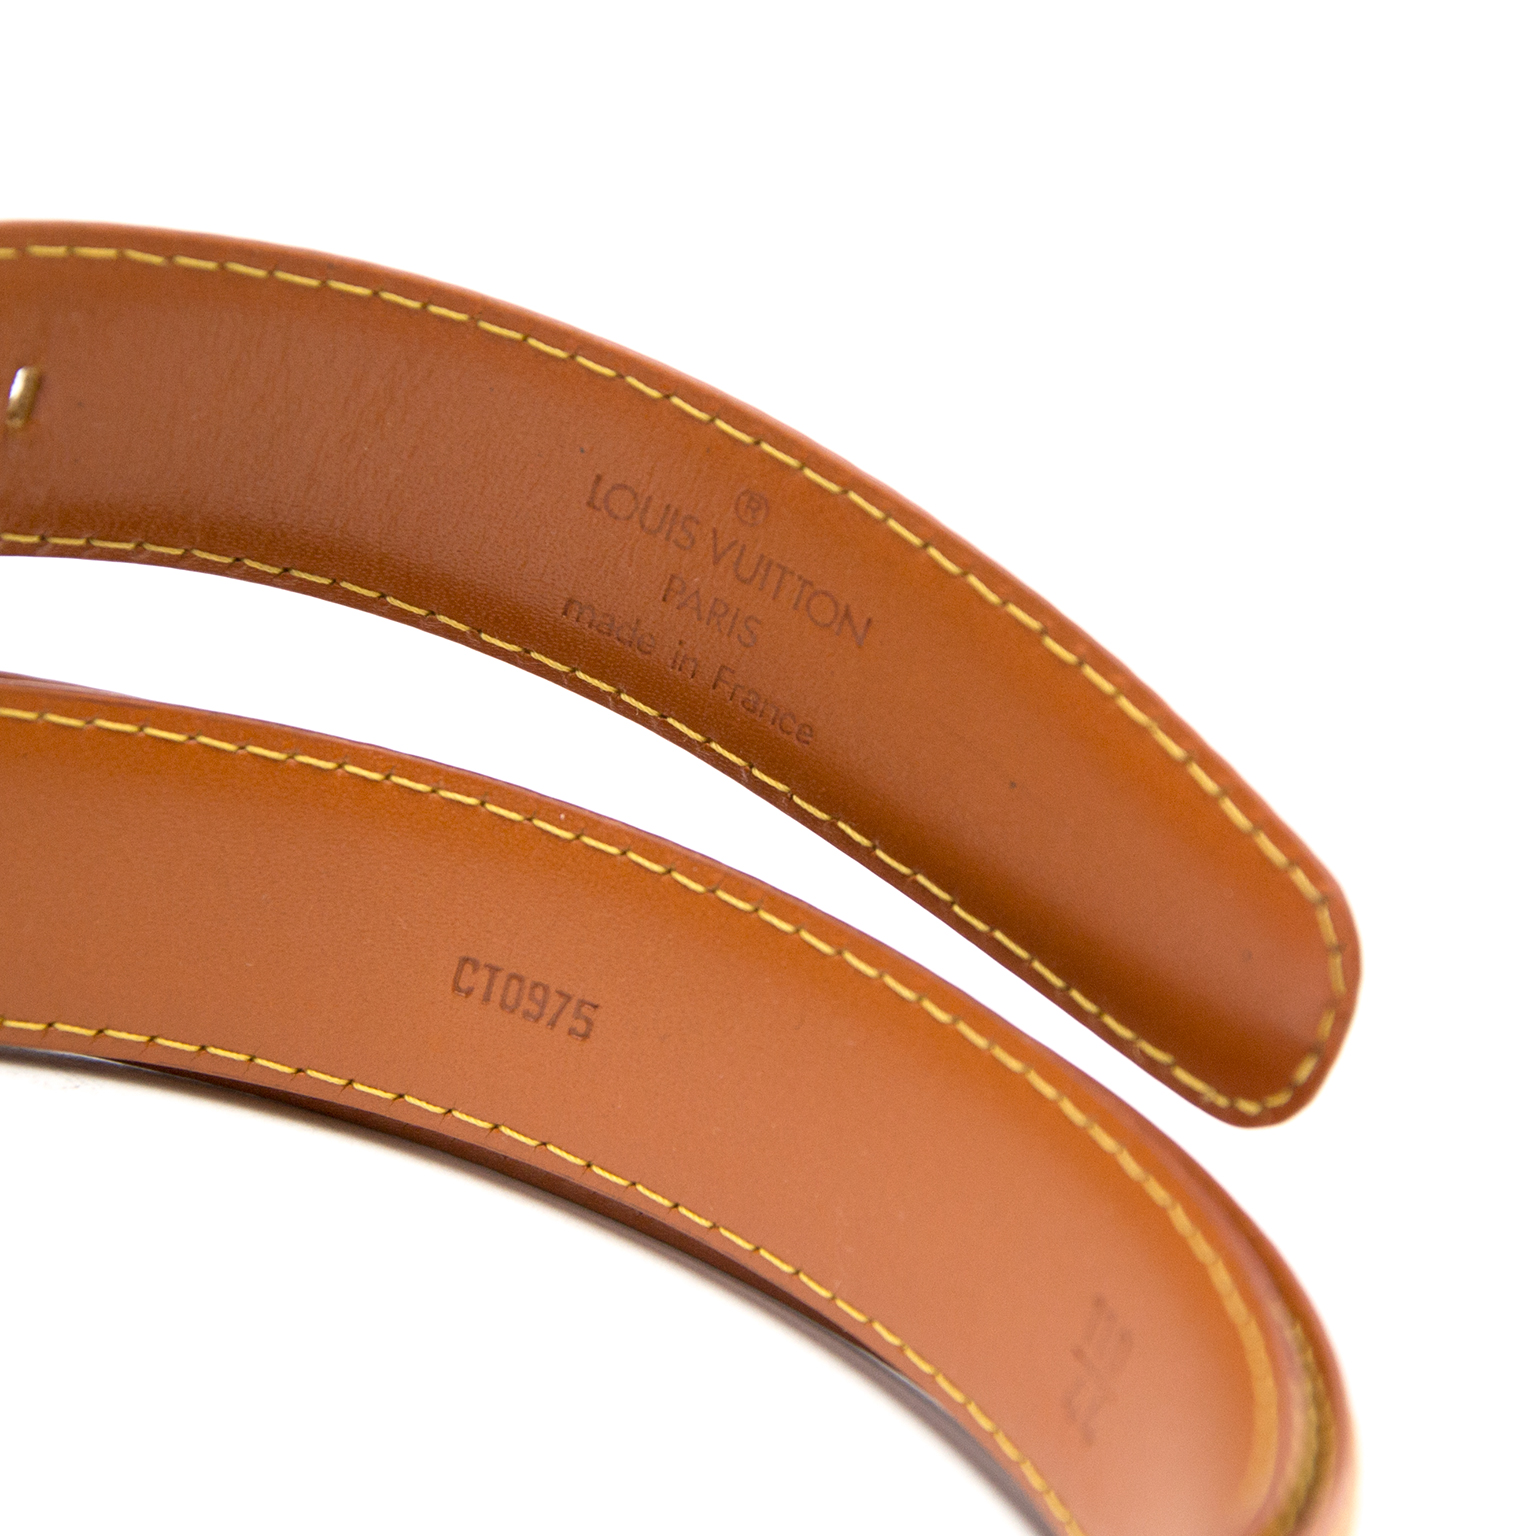 shop safe online Louis Vuittin Cognac Alma Belt - Size 75 at the best price Louis Vuittin Cognac Alma Belt - Size 75